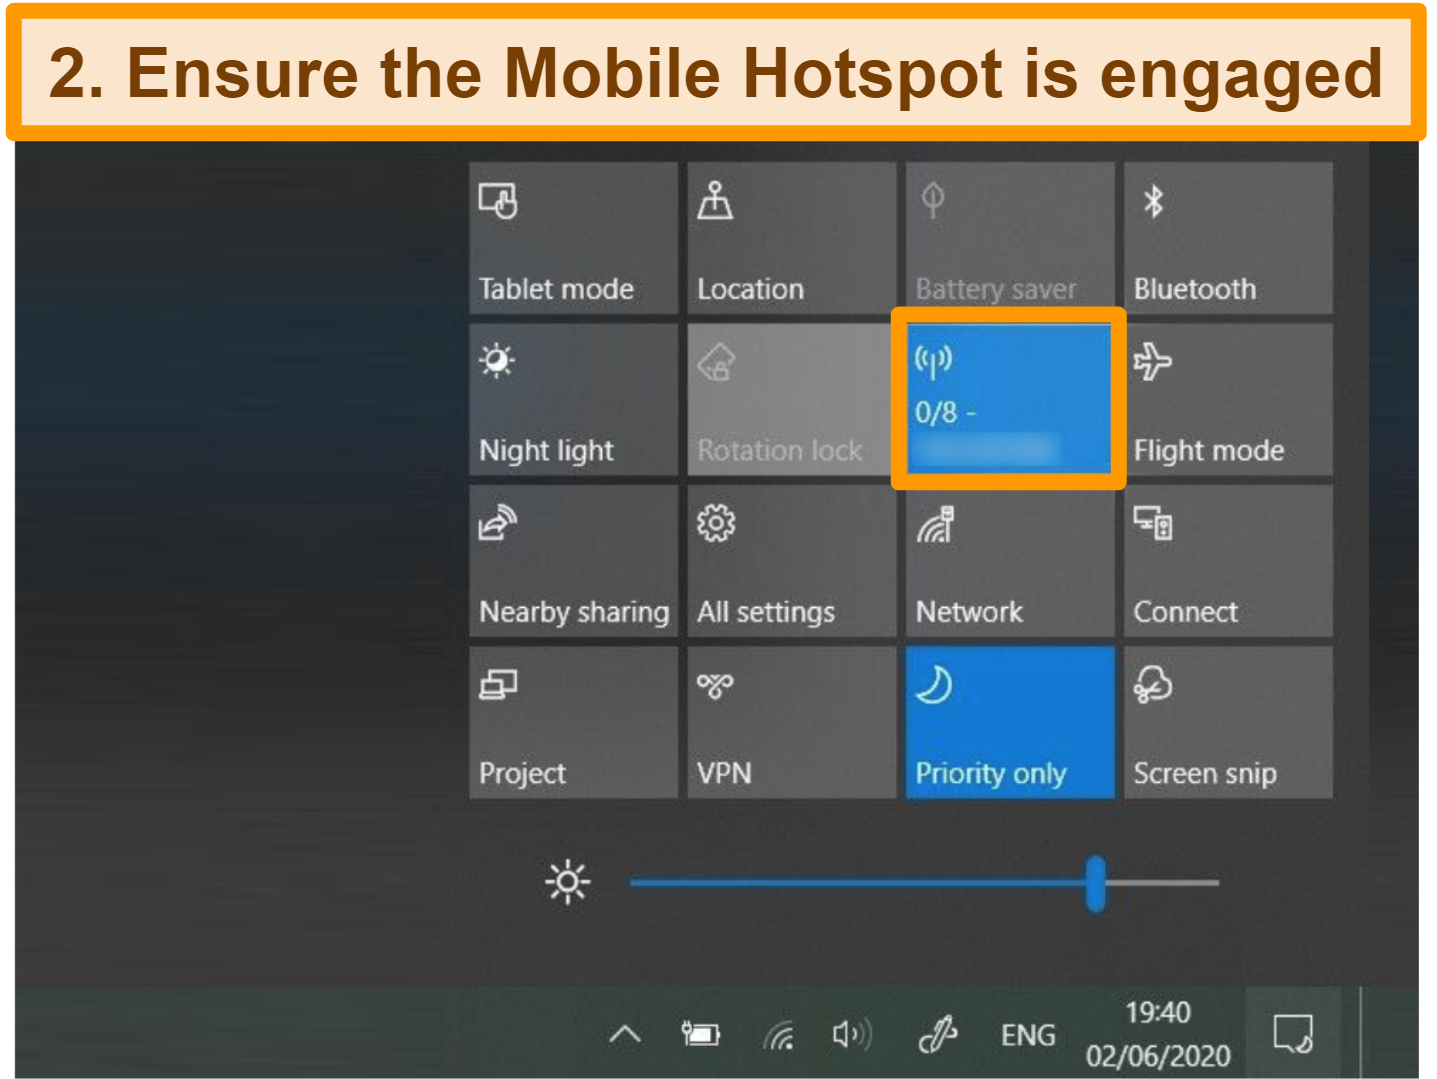 Screenshot of how to set up mobile hotspot on Windows open action center and engage mobile hotspot